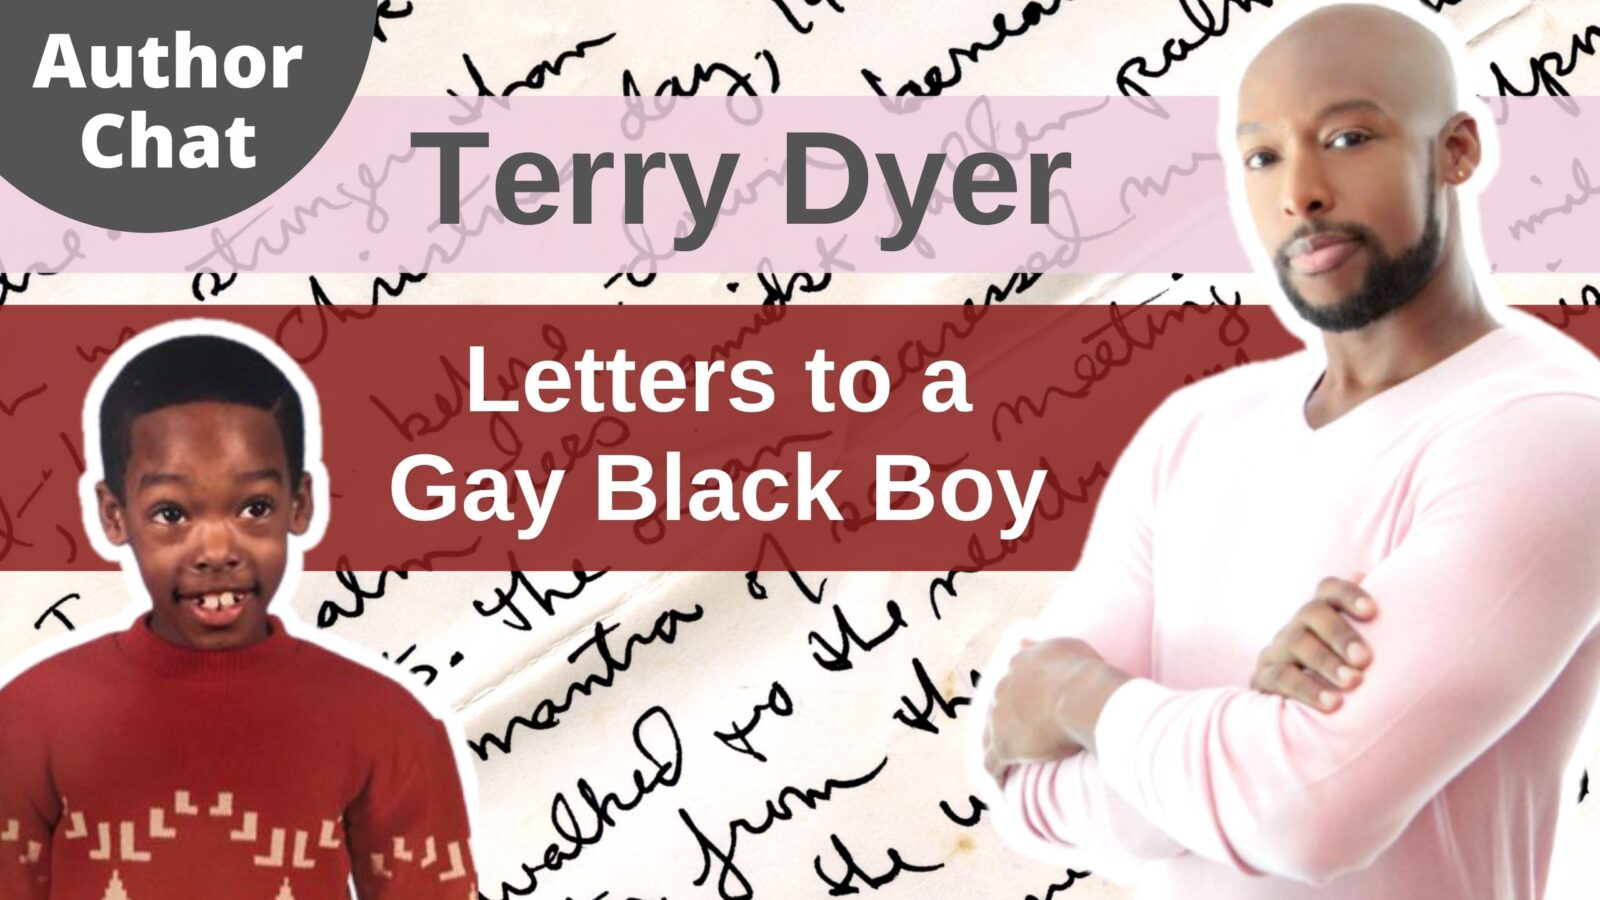 Letters to a Gay Black Boy by LGBTQ Autor Terry Dyer LGBT Professional OutBuro Out Voices Podcast Interview Video Series online community